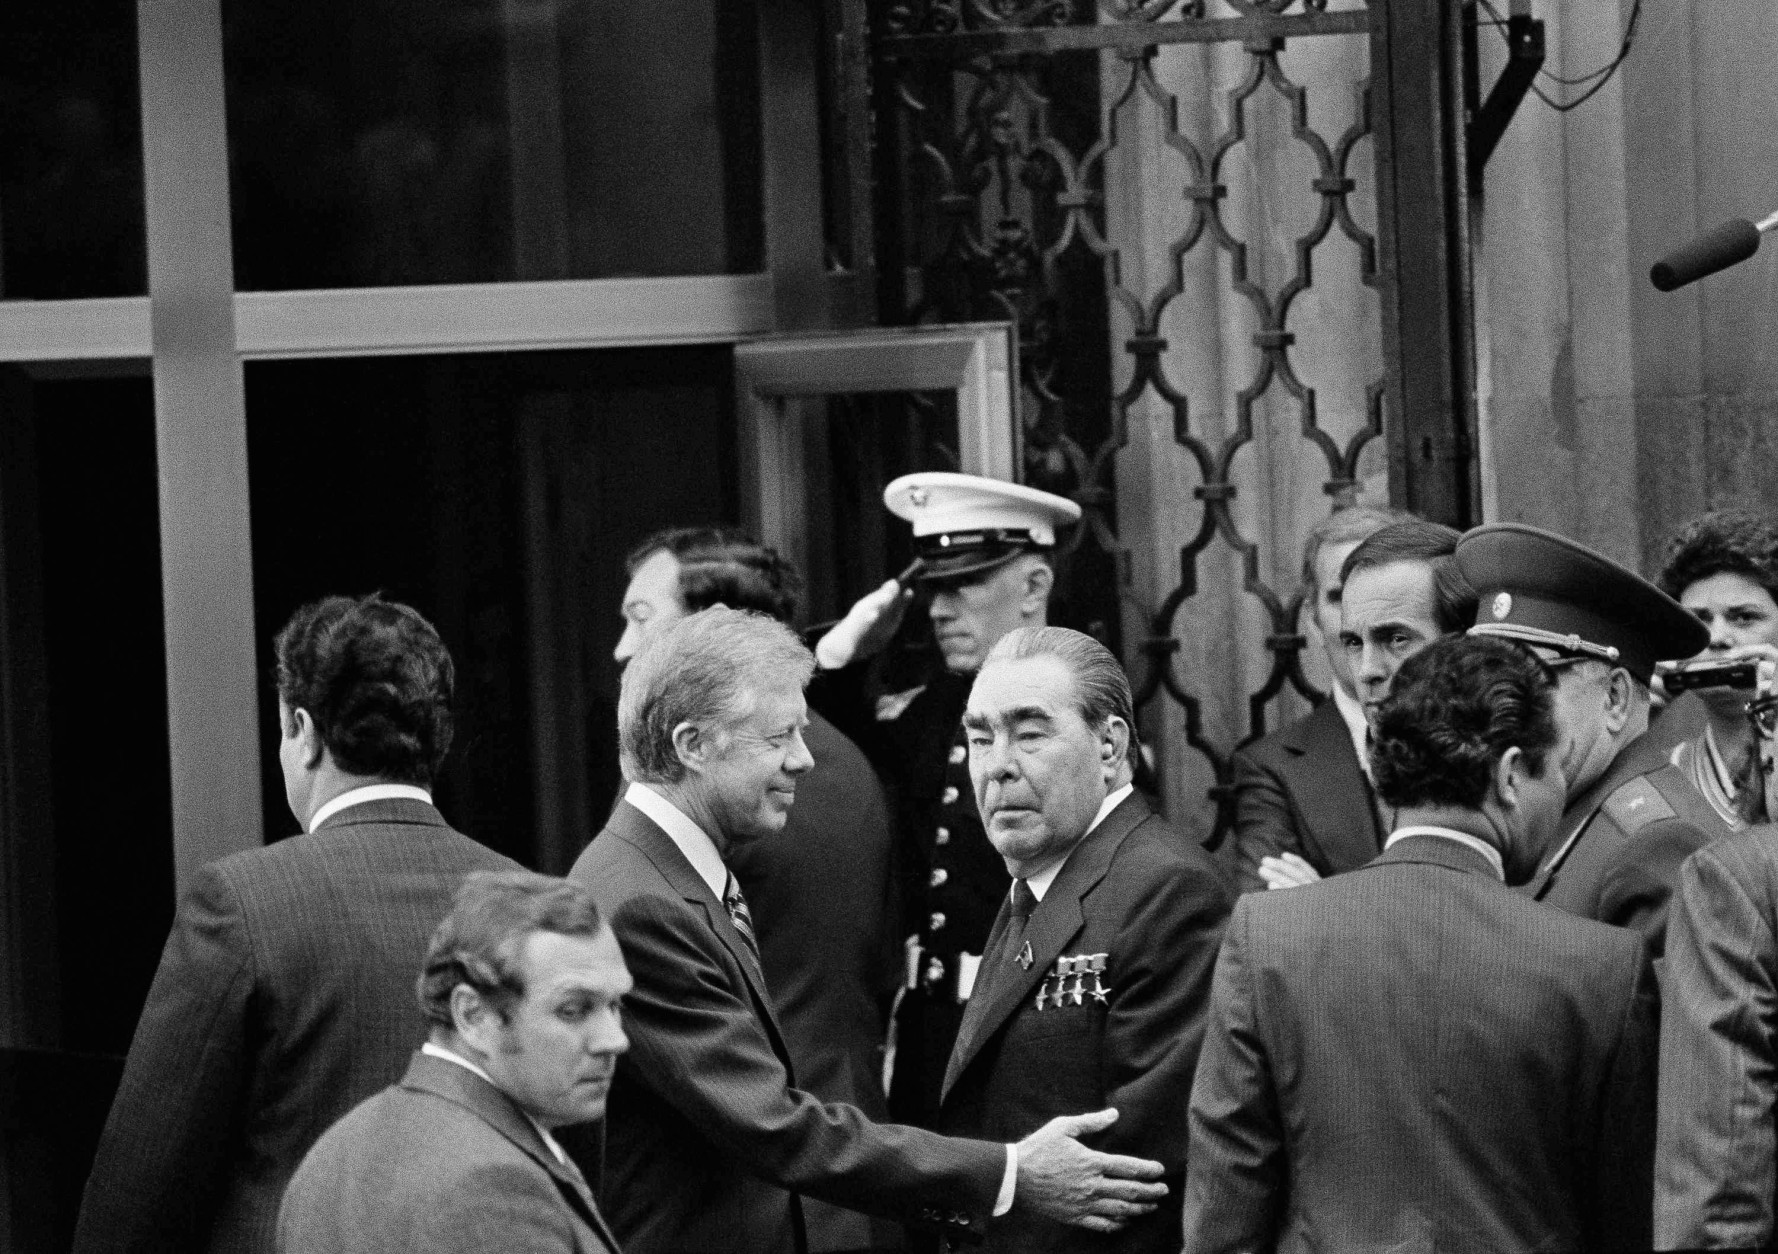 FILE - In this Monday, June 18, 1979 file photo, U.S. President Jimmy Carter, center left, smiles as he walks with Soviet President Leonid Brezhnev, center, outside the U.S. embassy in Vienna, Austria for private talks before heading to the Imperial Hofburg Palace to sign the SALT II  nuclear treaty. On Wednesday, Aug. 12, 2015, Carter announced he has cancer and will undergo treatment at an Atlanta hospital. (AP Photo)